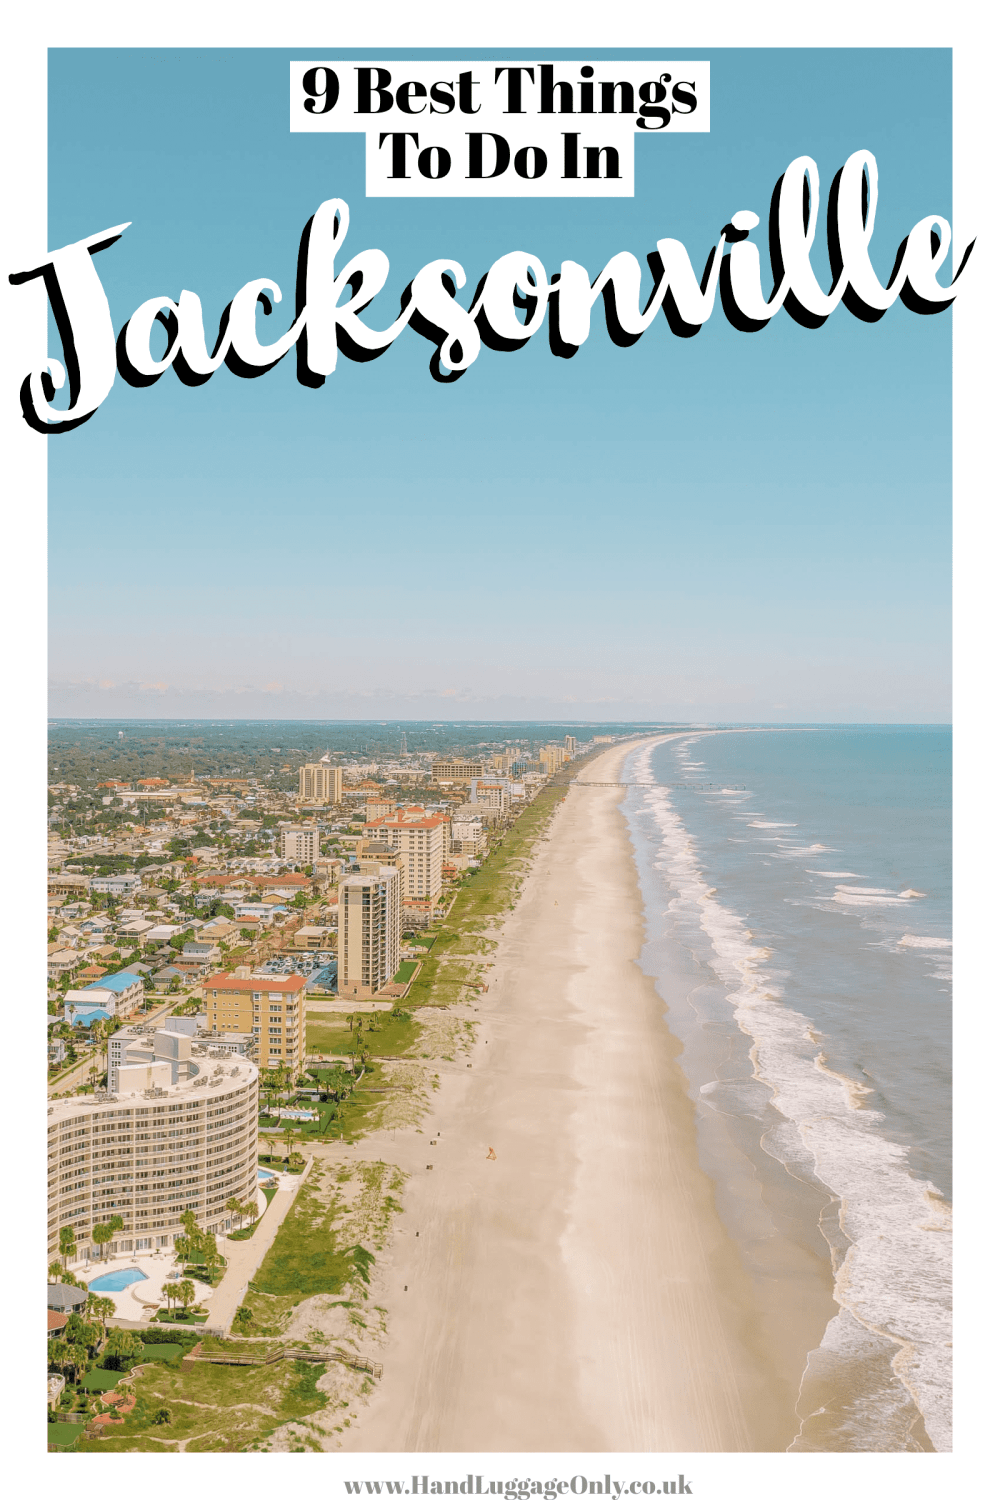 Best Things to Do in Jacksonville (1)